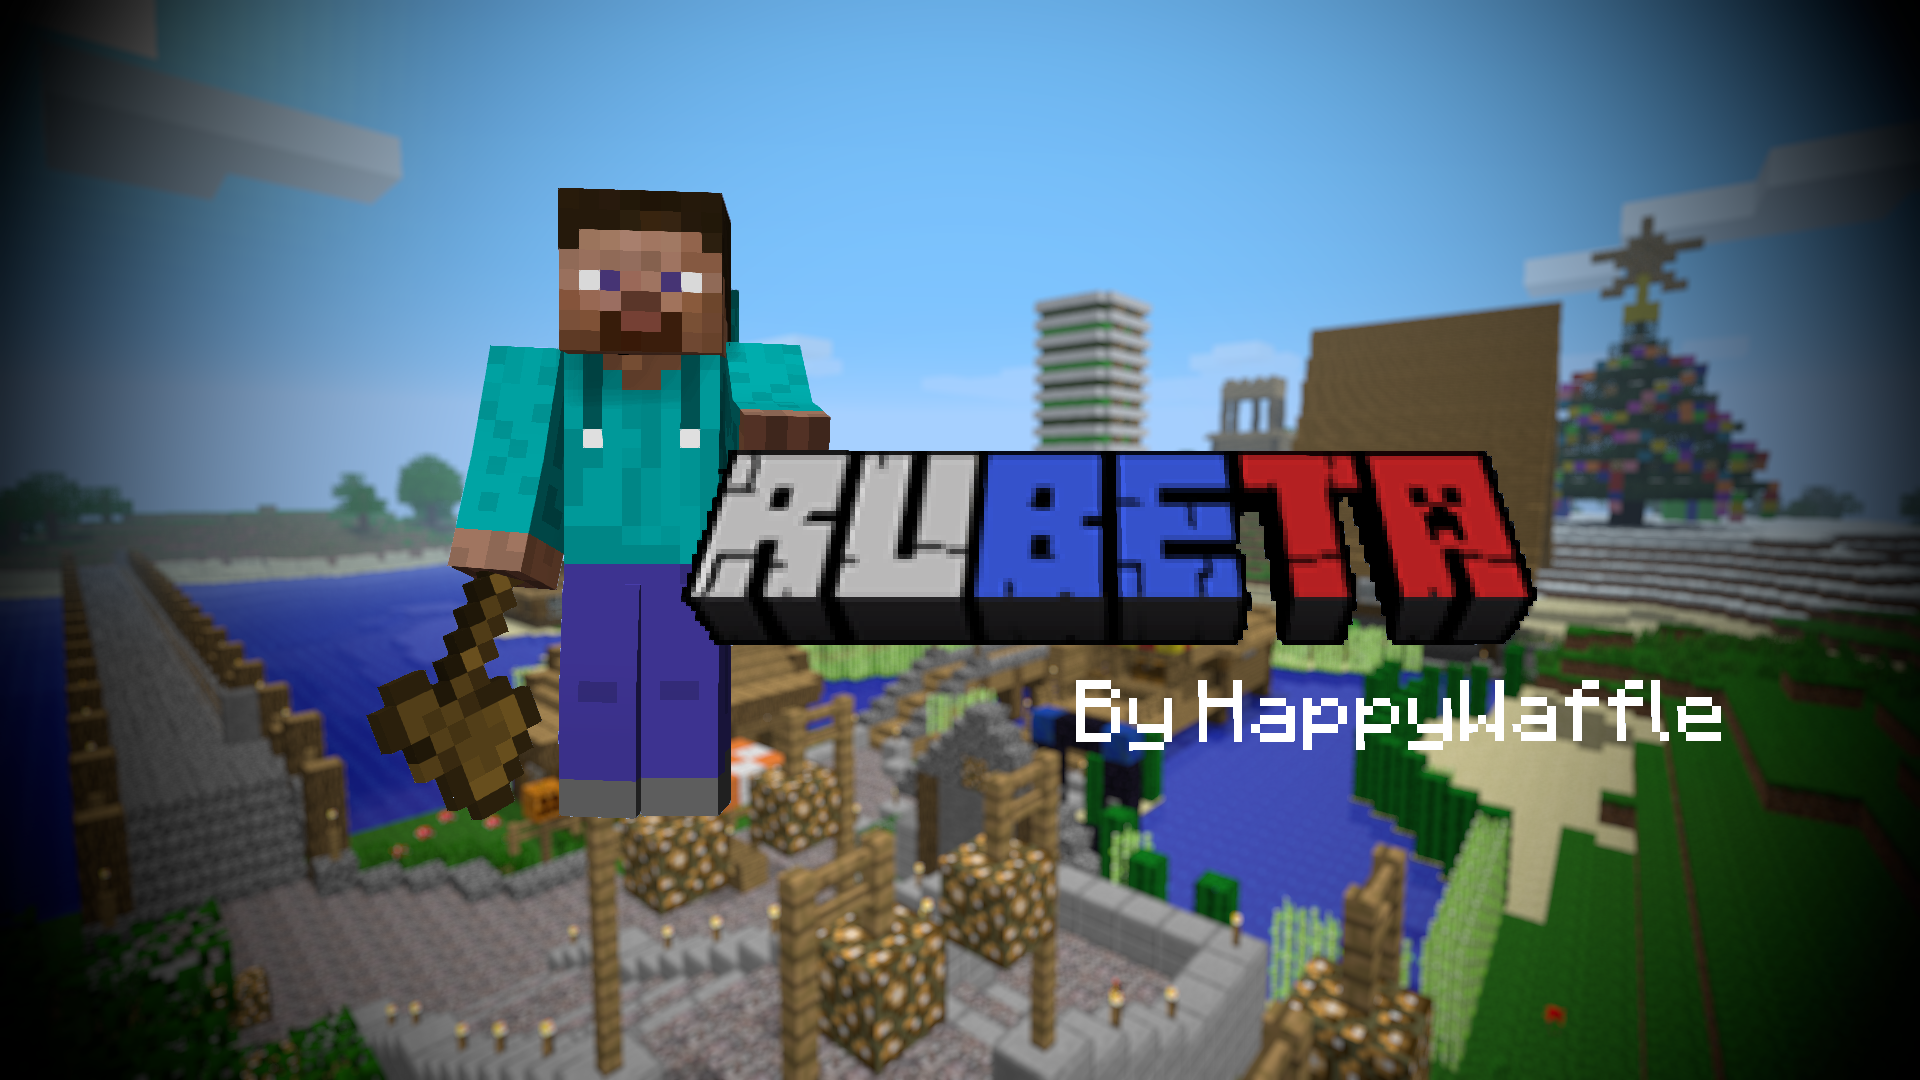 [Minecraft Beta 1.7.3] RuBeta - Олдскульный сервер!